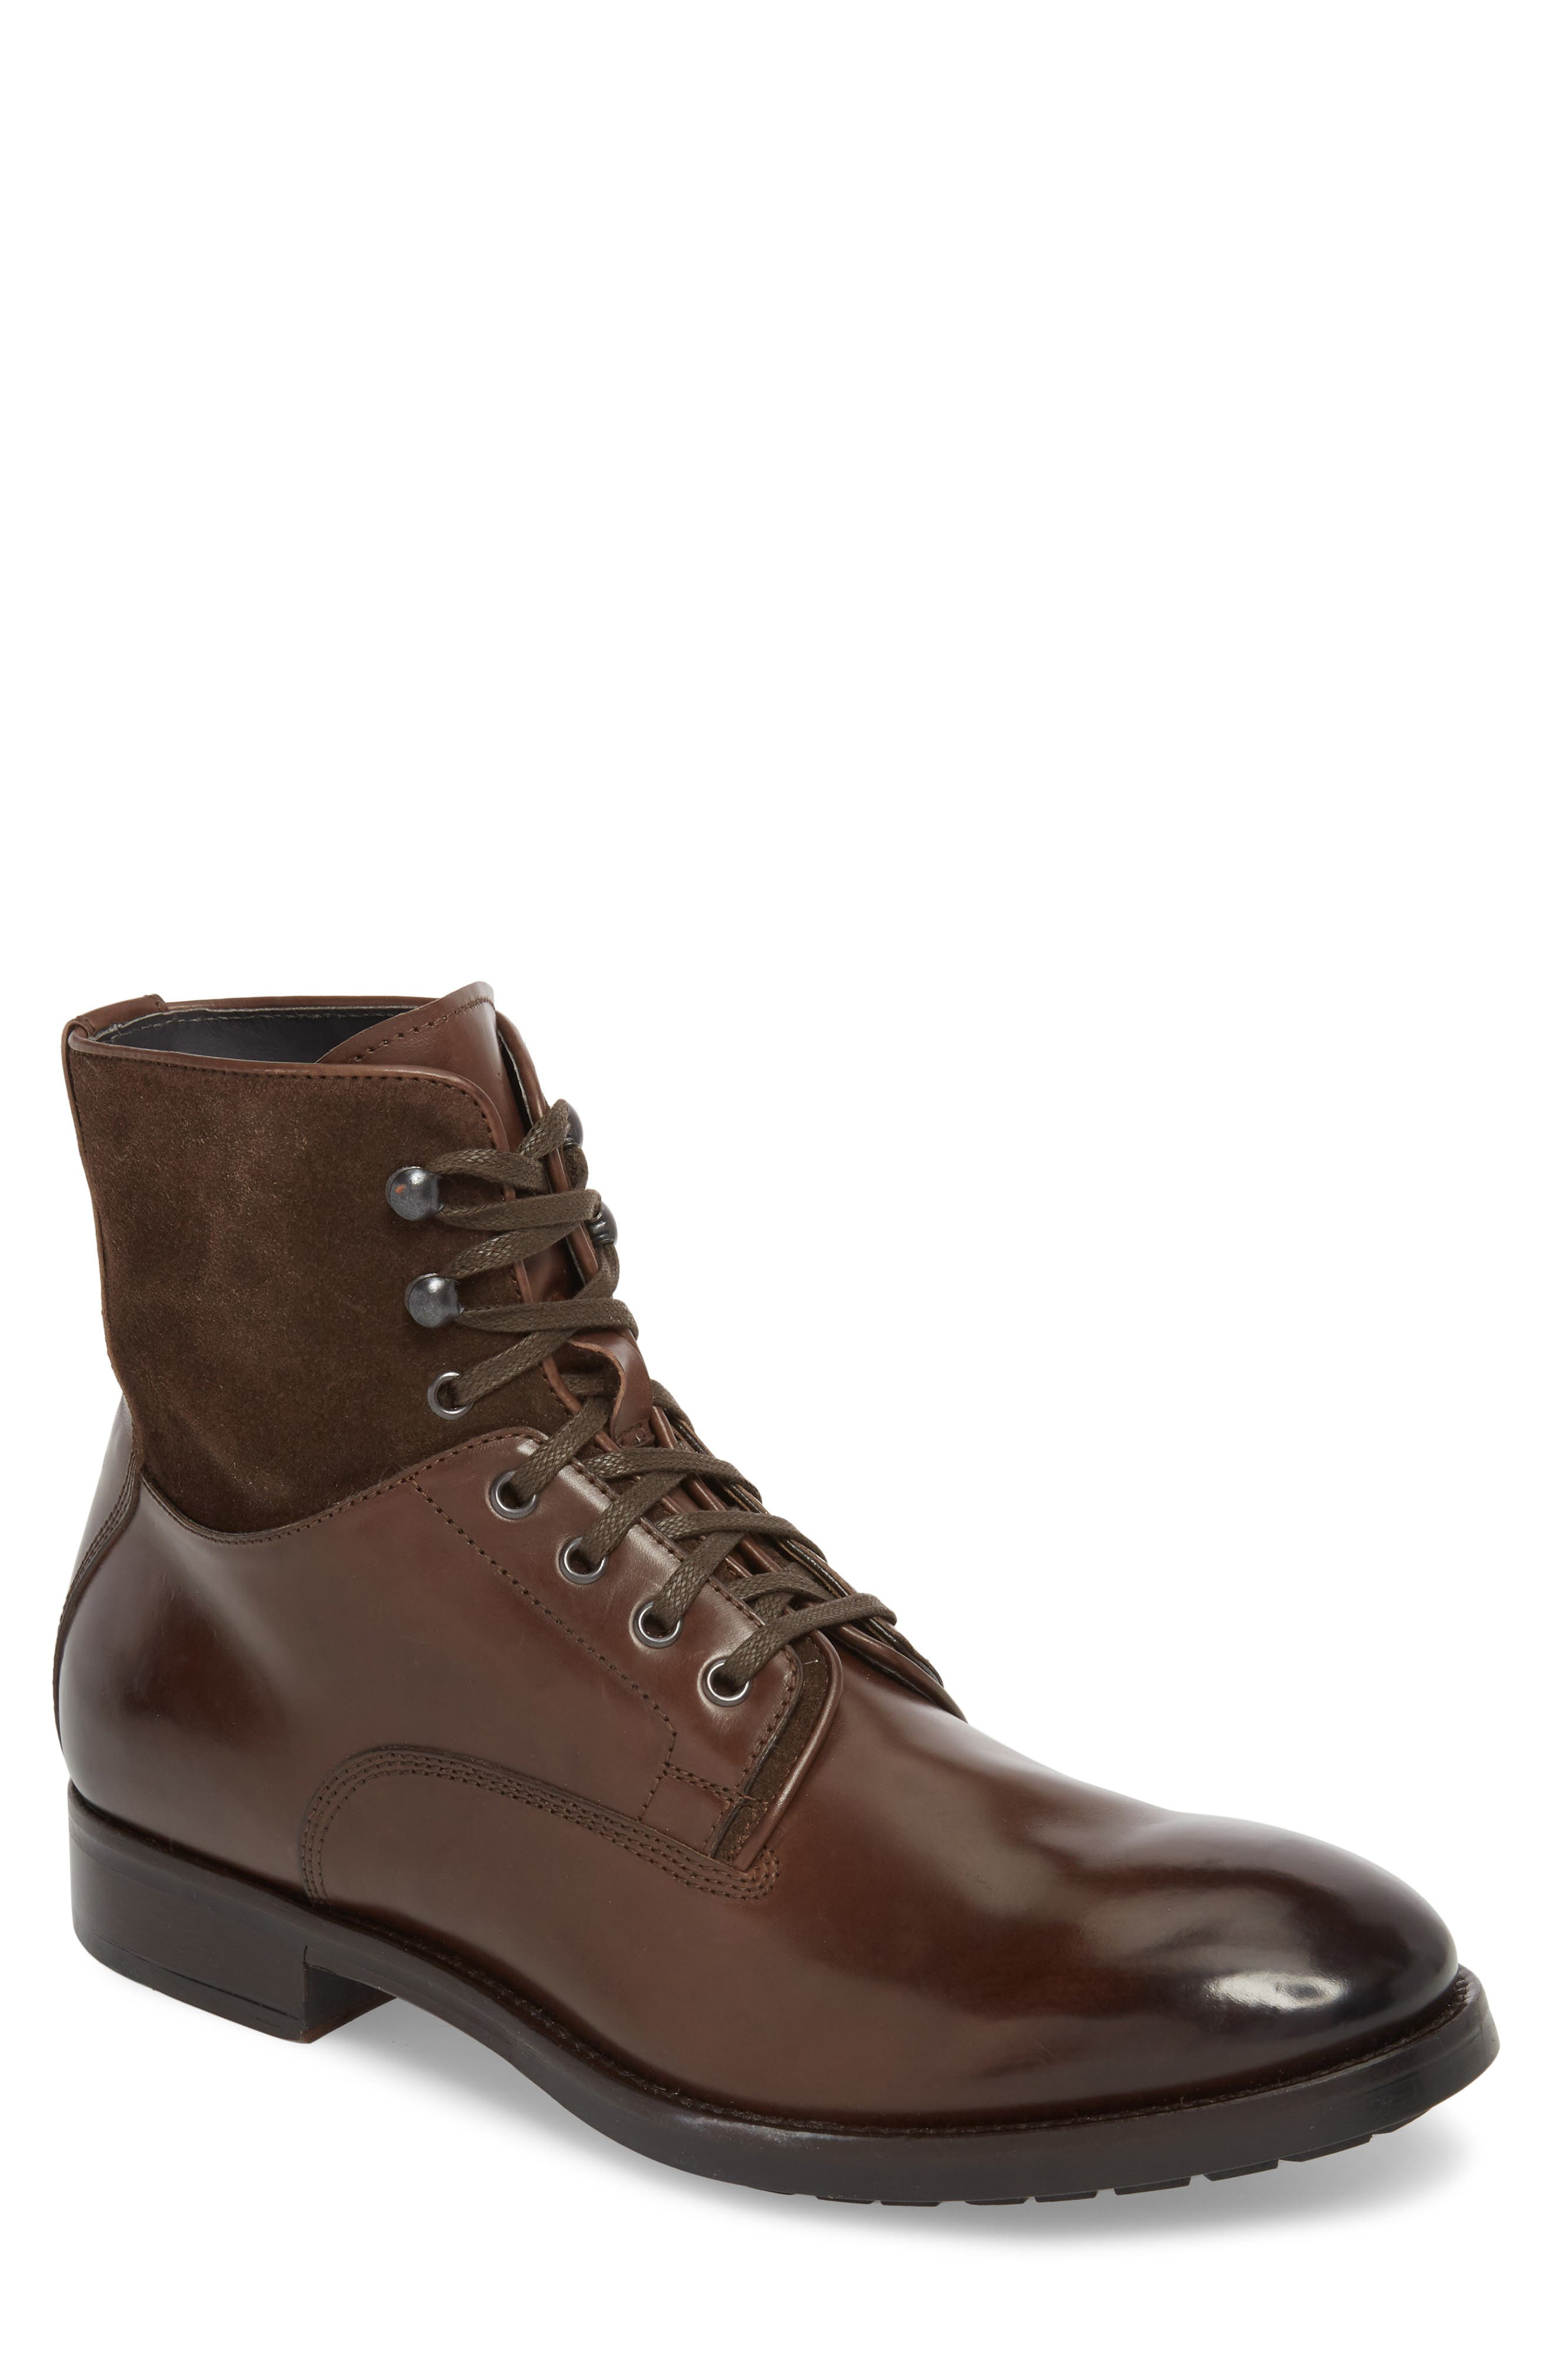 TO BOOT NEW YORK Abbott Tall Plain Toe Boot, Main, color, TMORO LEATHER